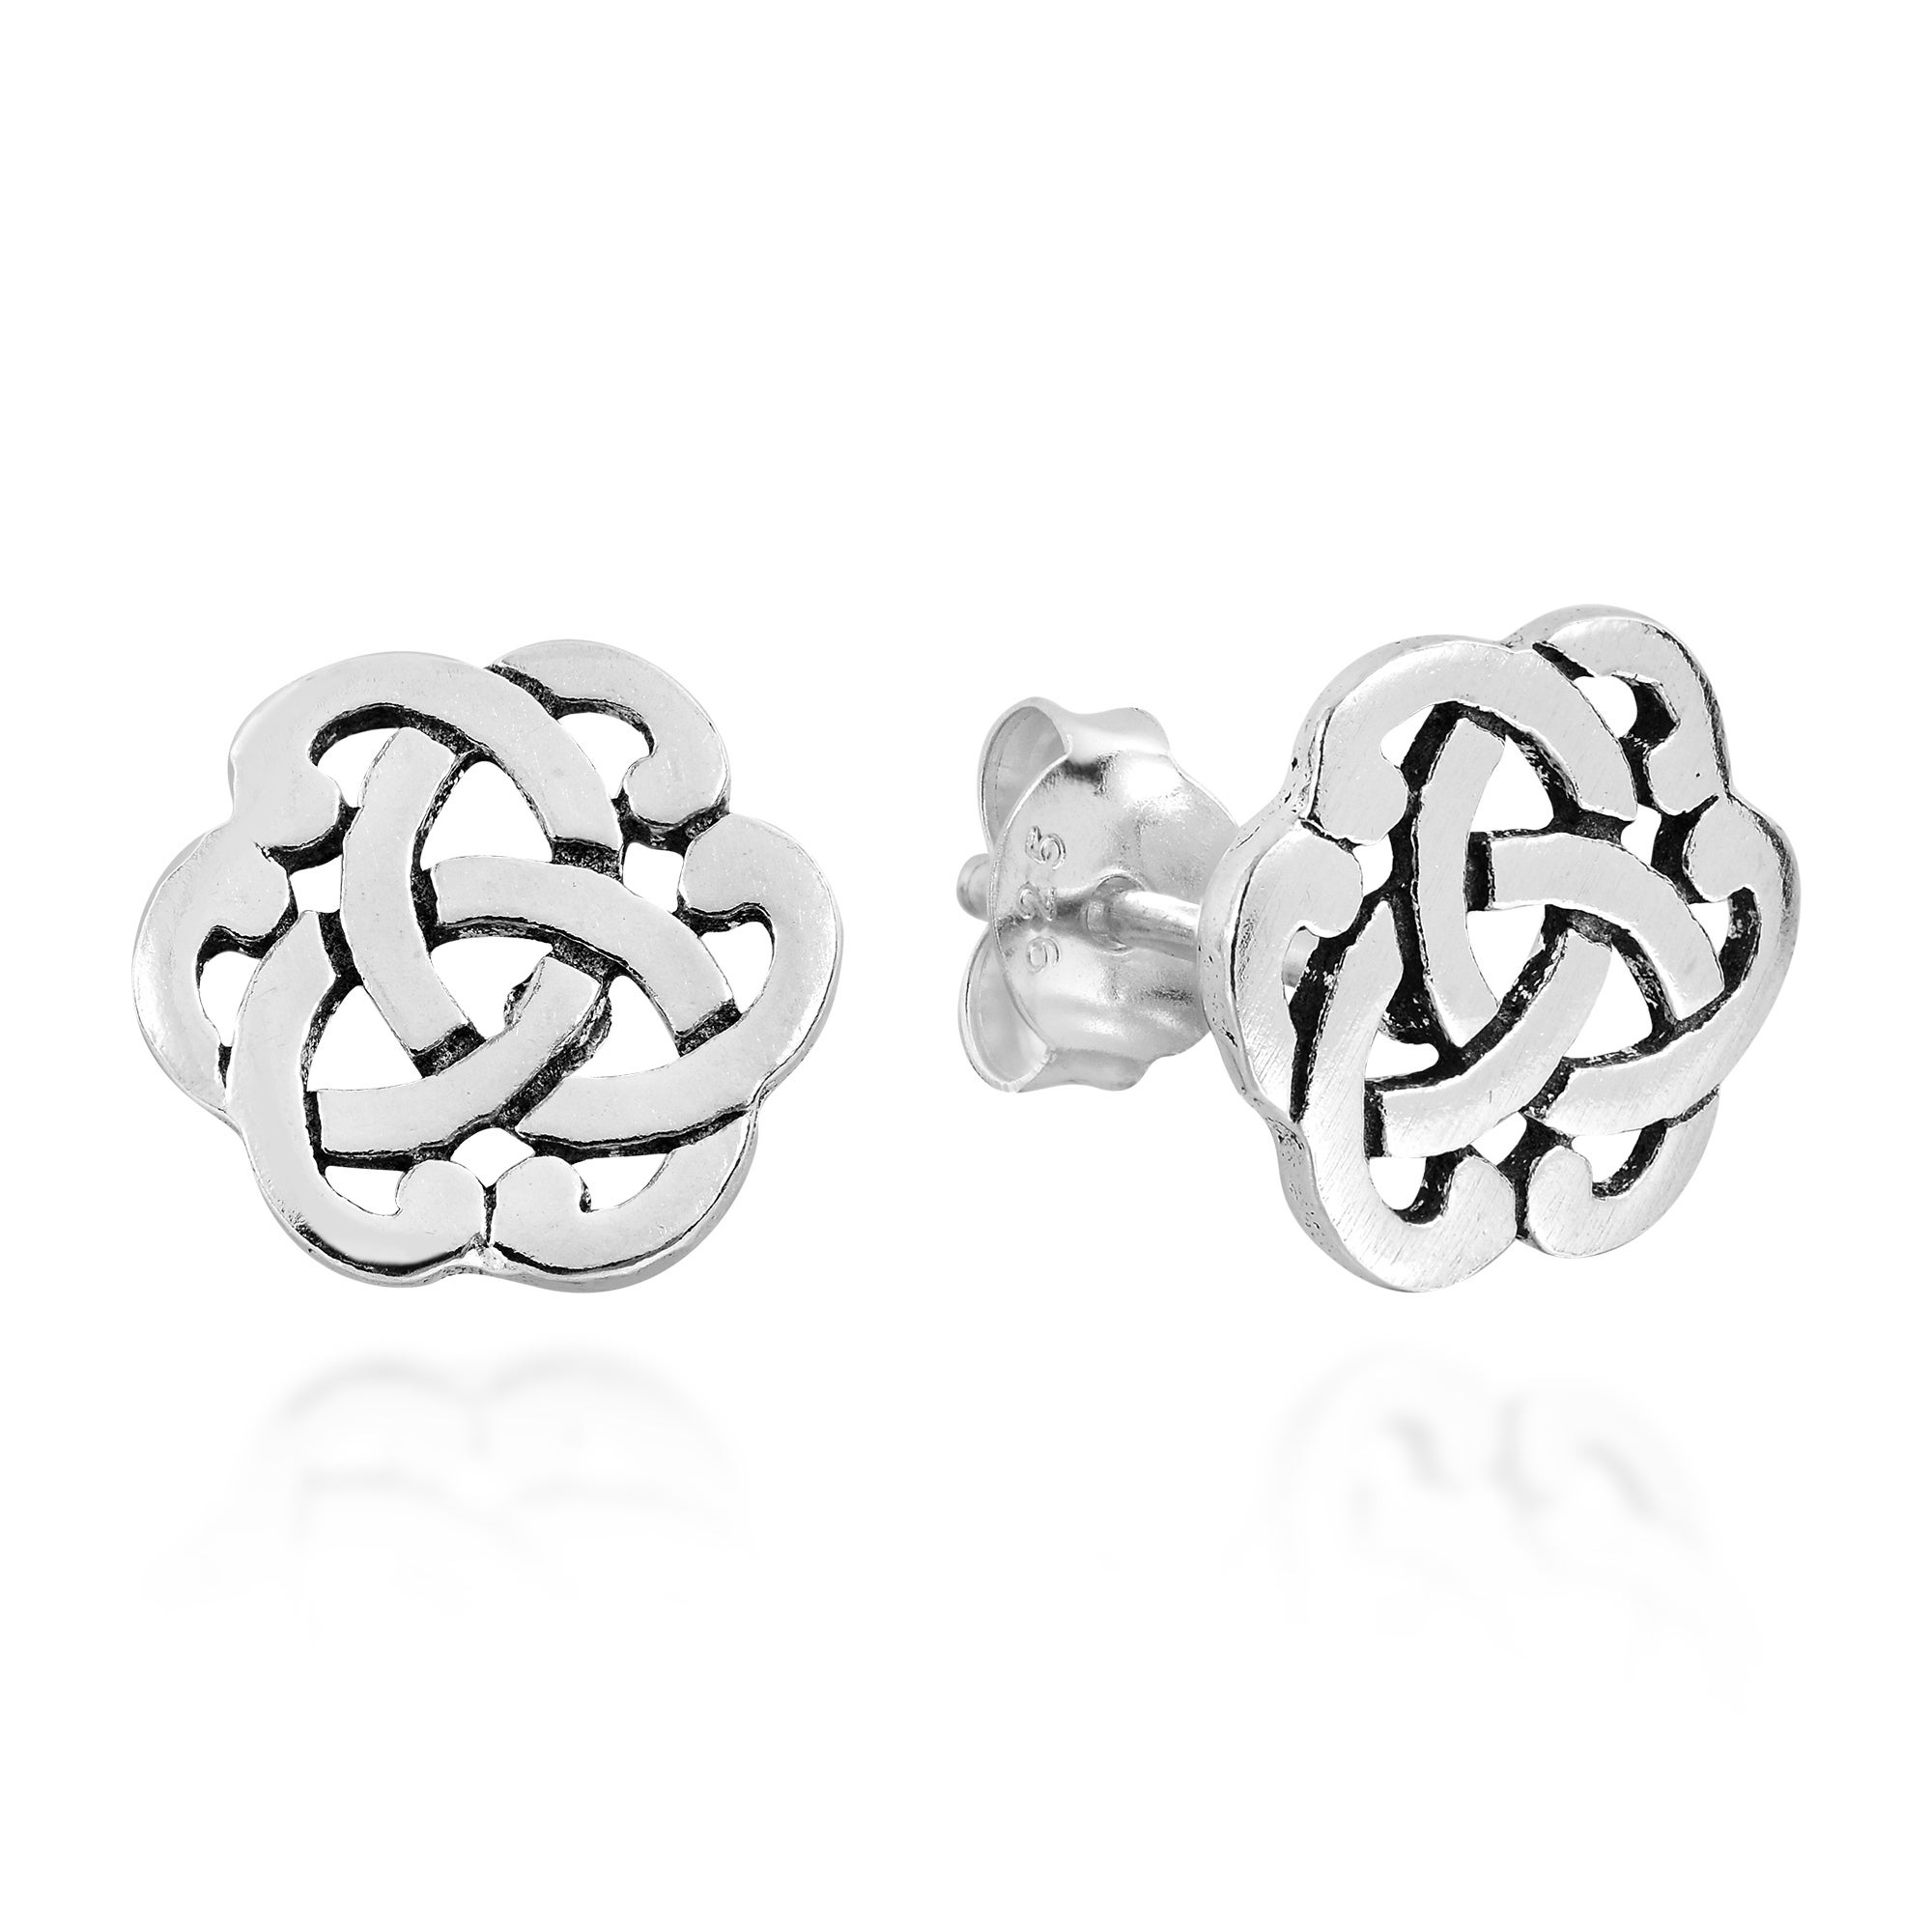 connoisseur trinity irish earrings celtic knot product silver